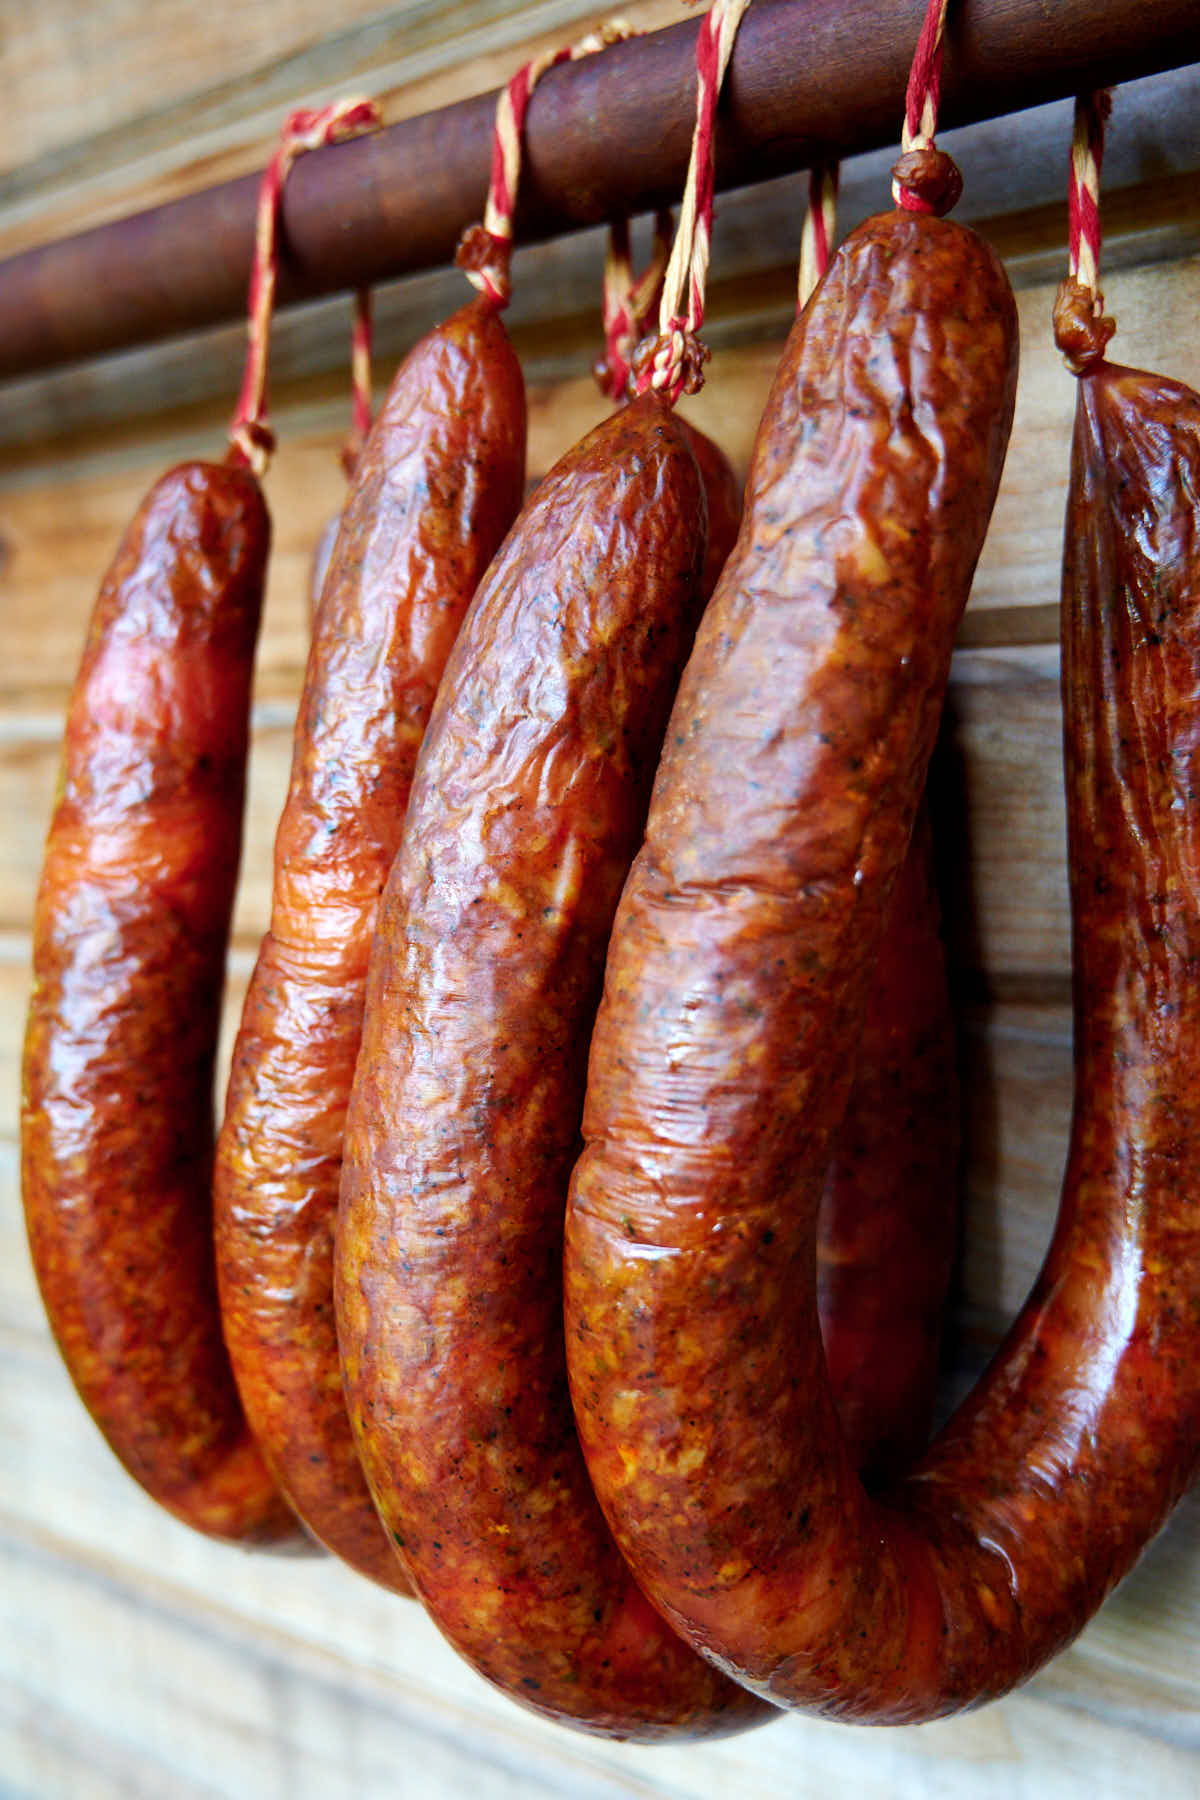 Homemade Chicken Andouille Sausage By the Smokehouse